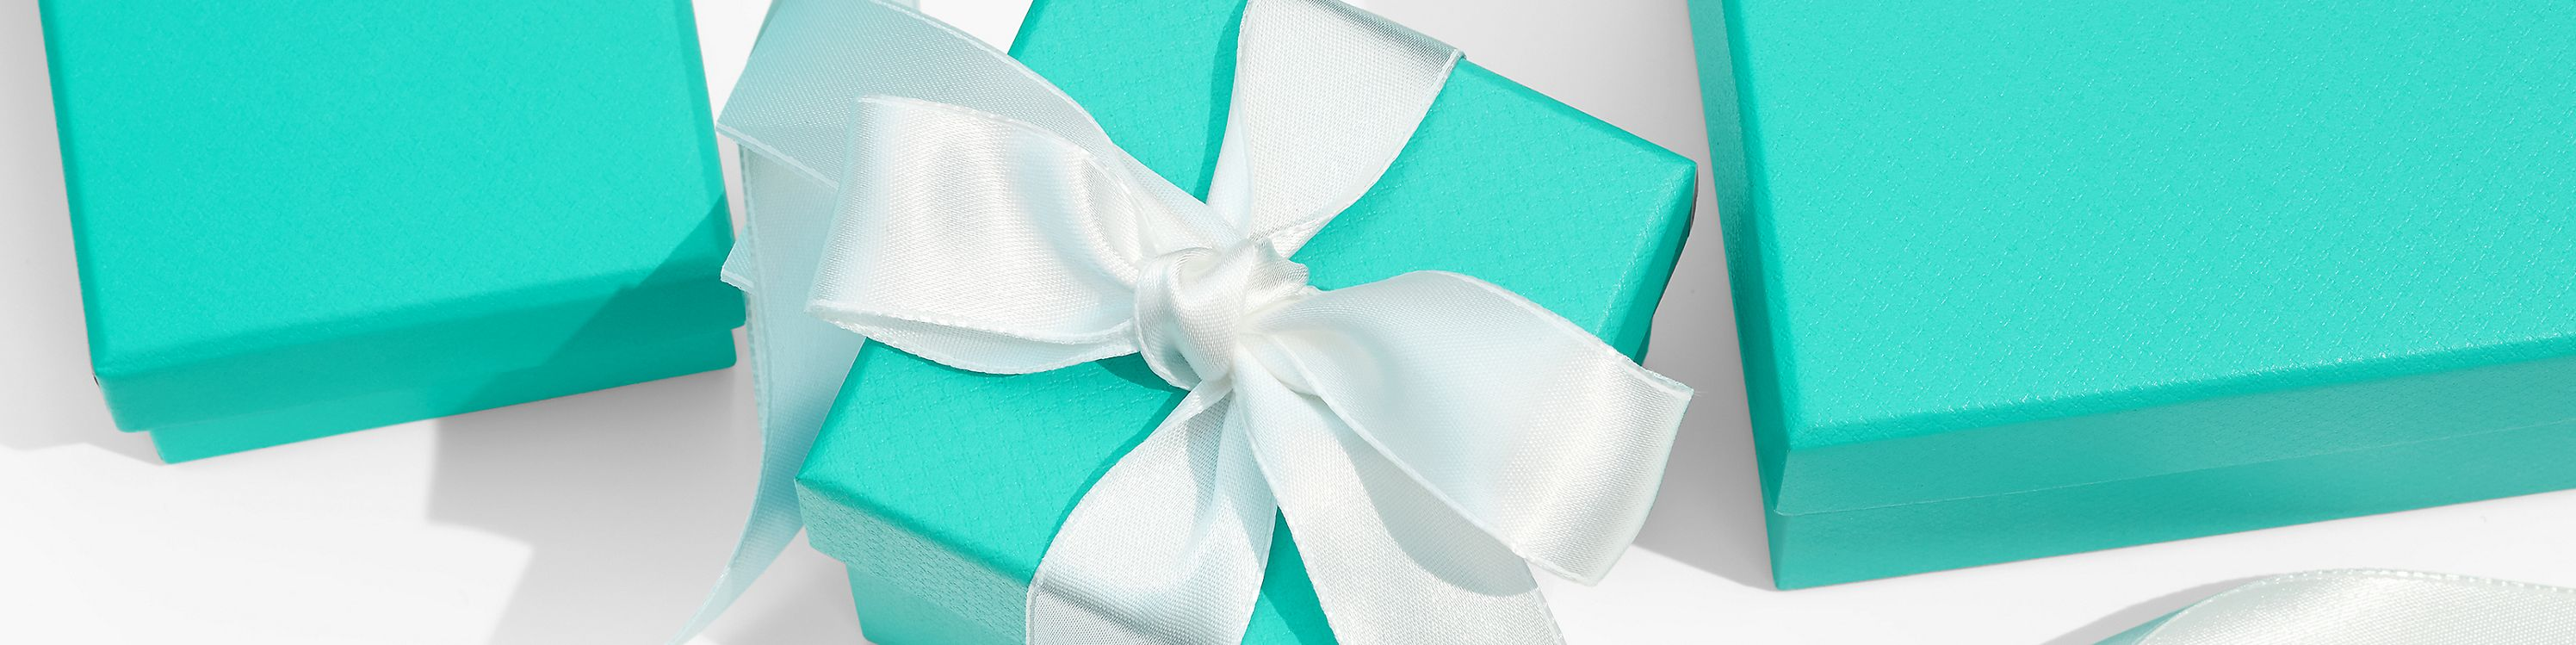 Tiffany & Co. 暢銷品